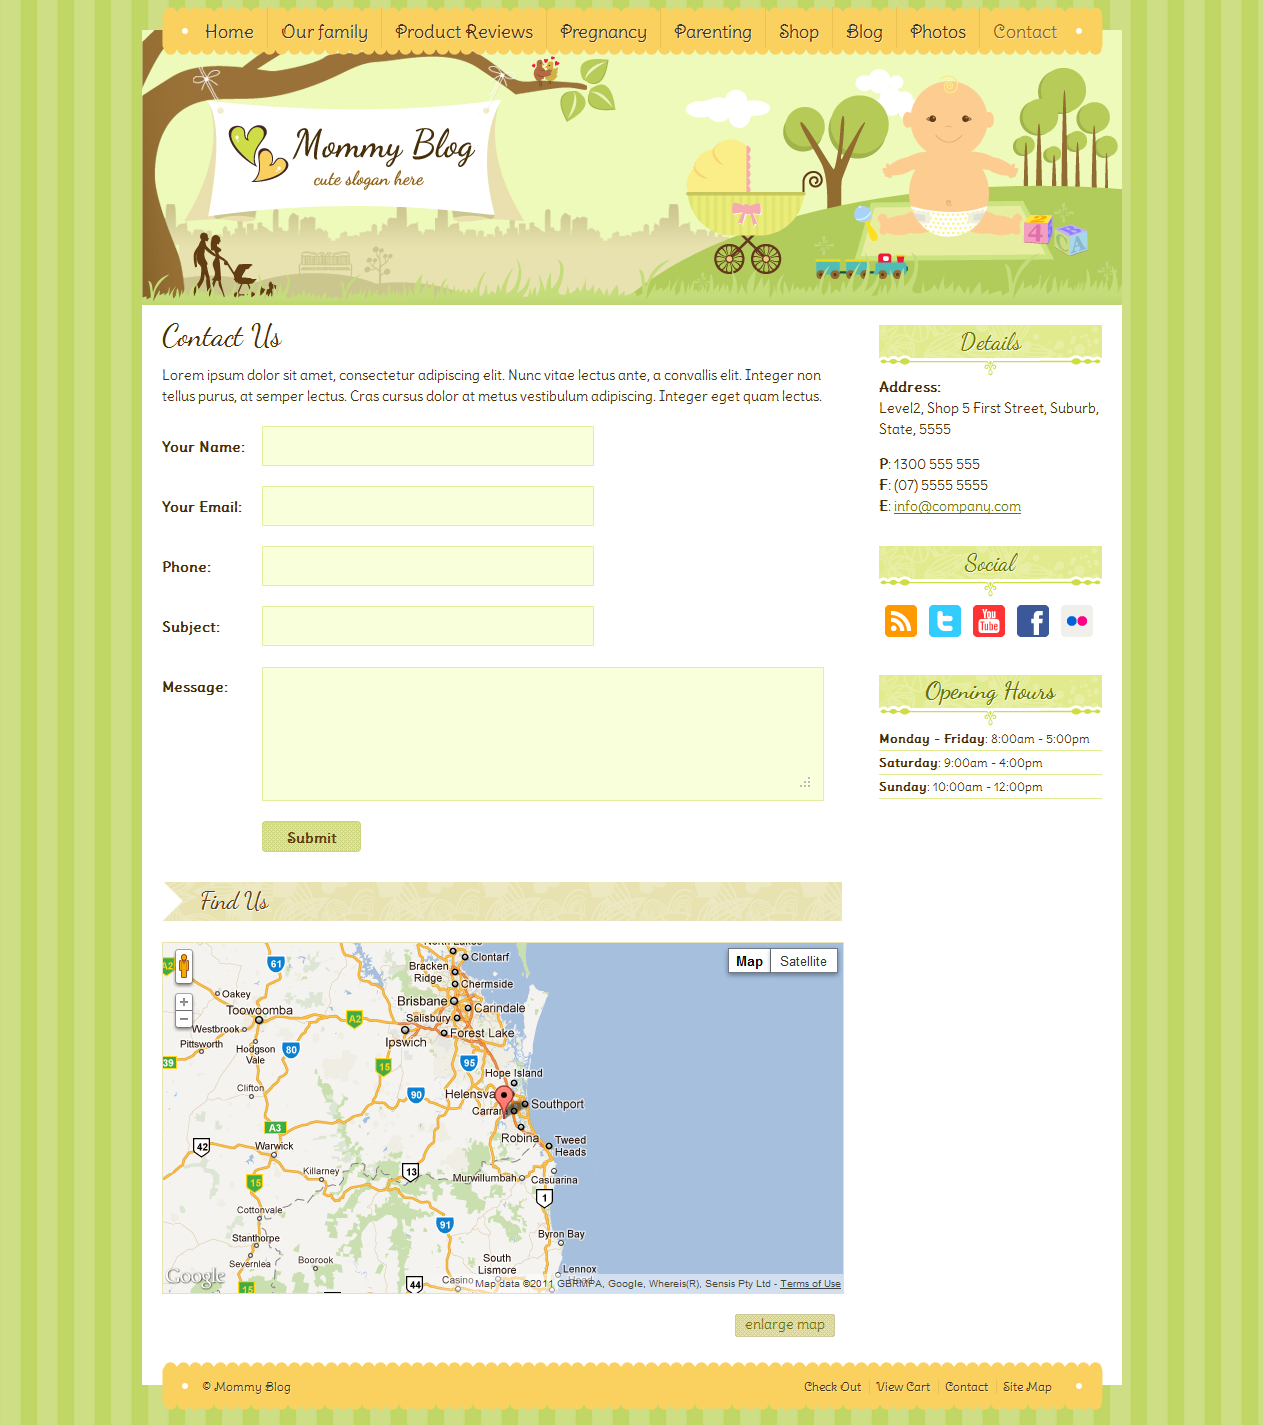 Mommy Blog HTML - Including Shop &amp; Blog Layout 